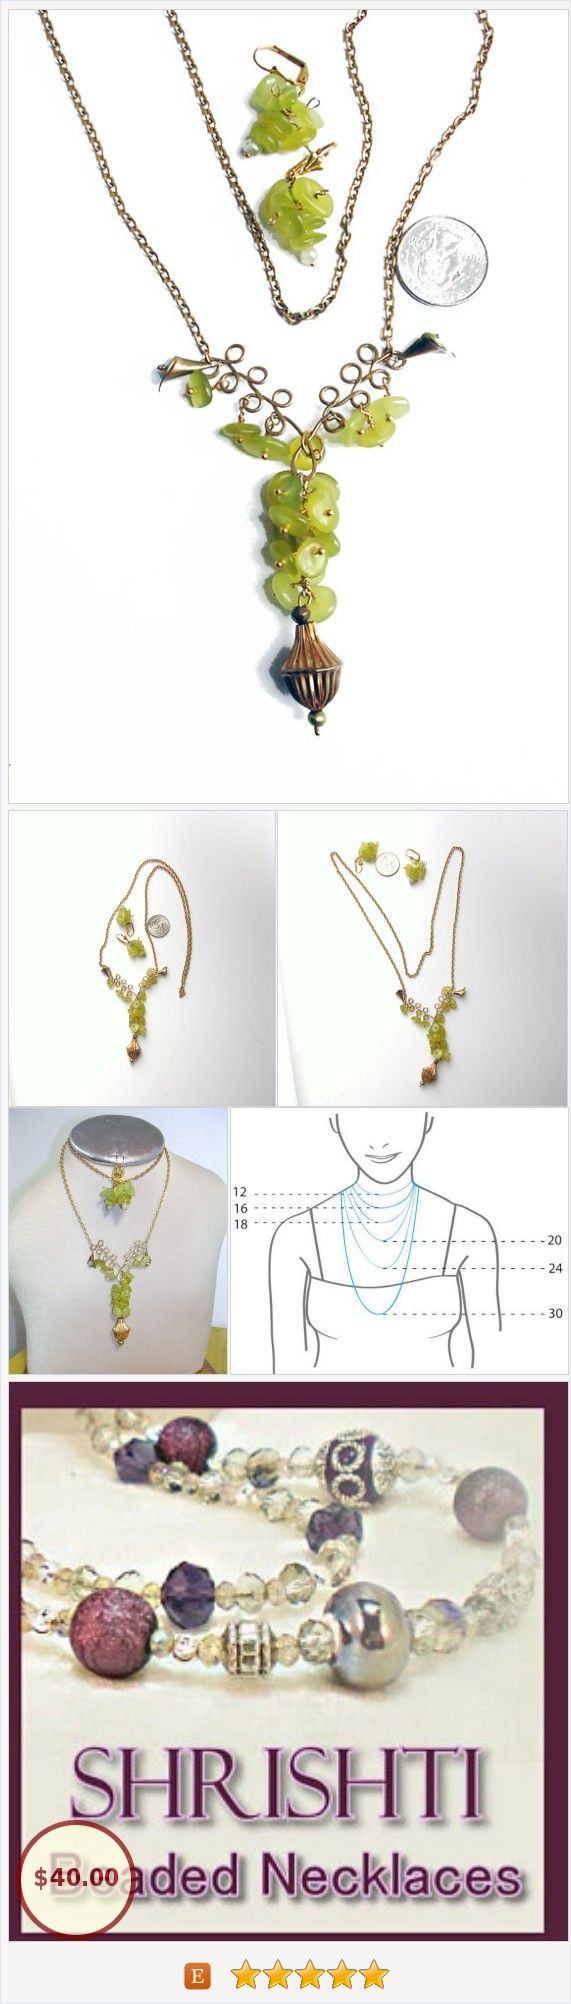 """Green Jade Necklace, """"Grapes on the Vine"""" - Wire Wrap Jade Pendant - Matching Earrings- Beautiful One of A Kind Design https://www.etsy.com/BEADEDNECKLACESHOPPE/listing/166896533/green-jade-necklace-grapes-on-the-vine?ref=related-3"""